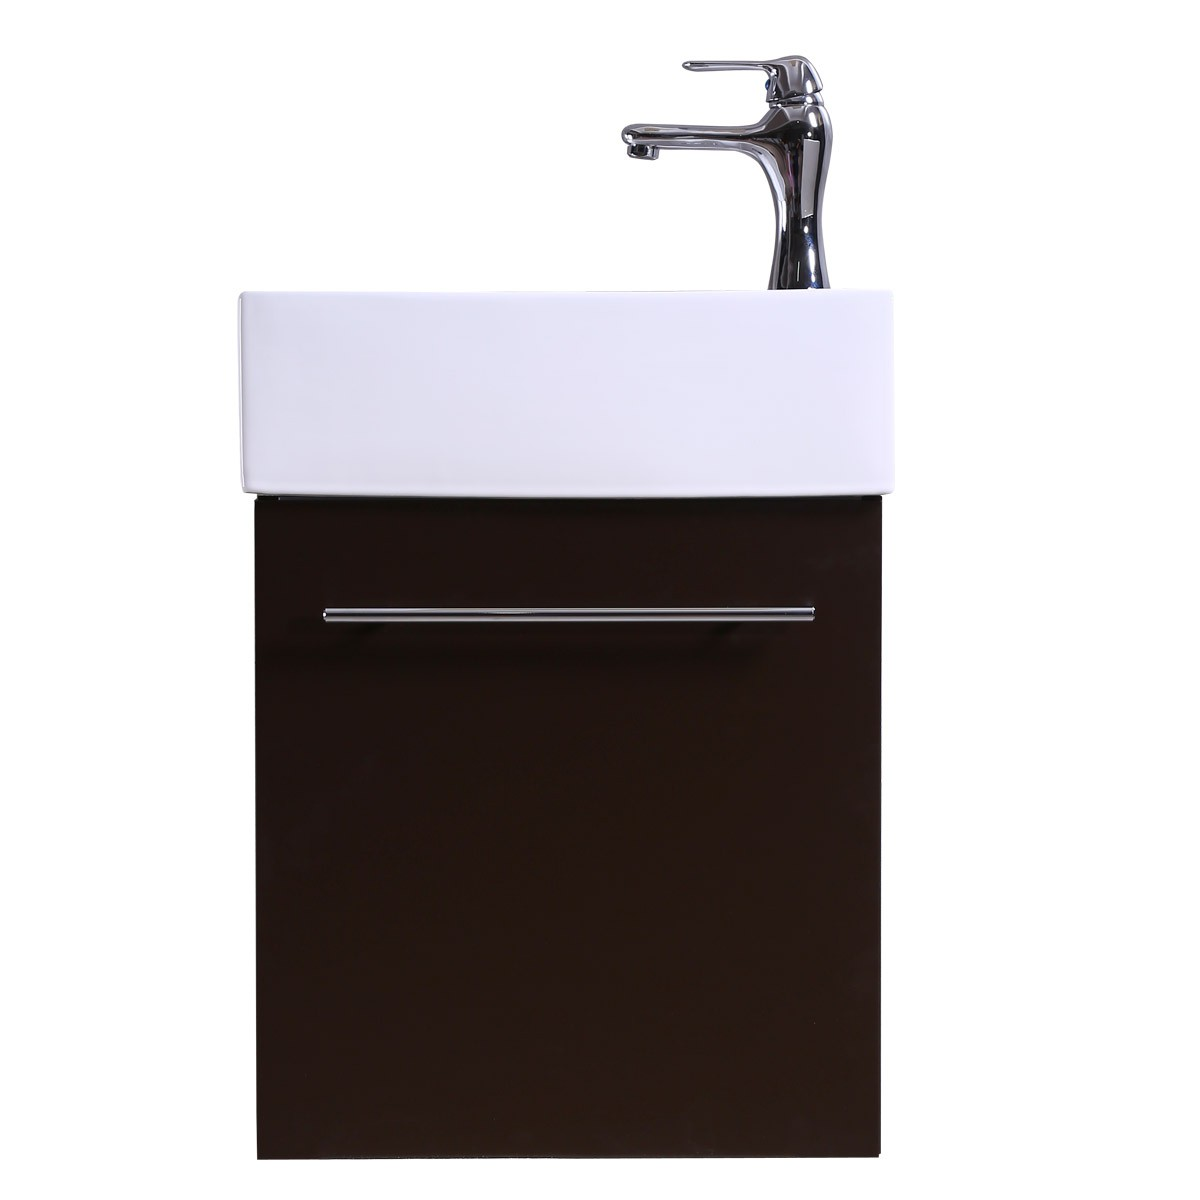 17 Quot Small White Vanity Bathroom Sink Black Cabinet With